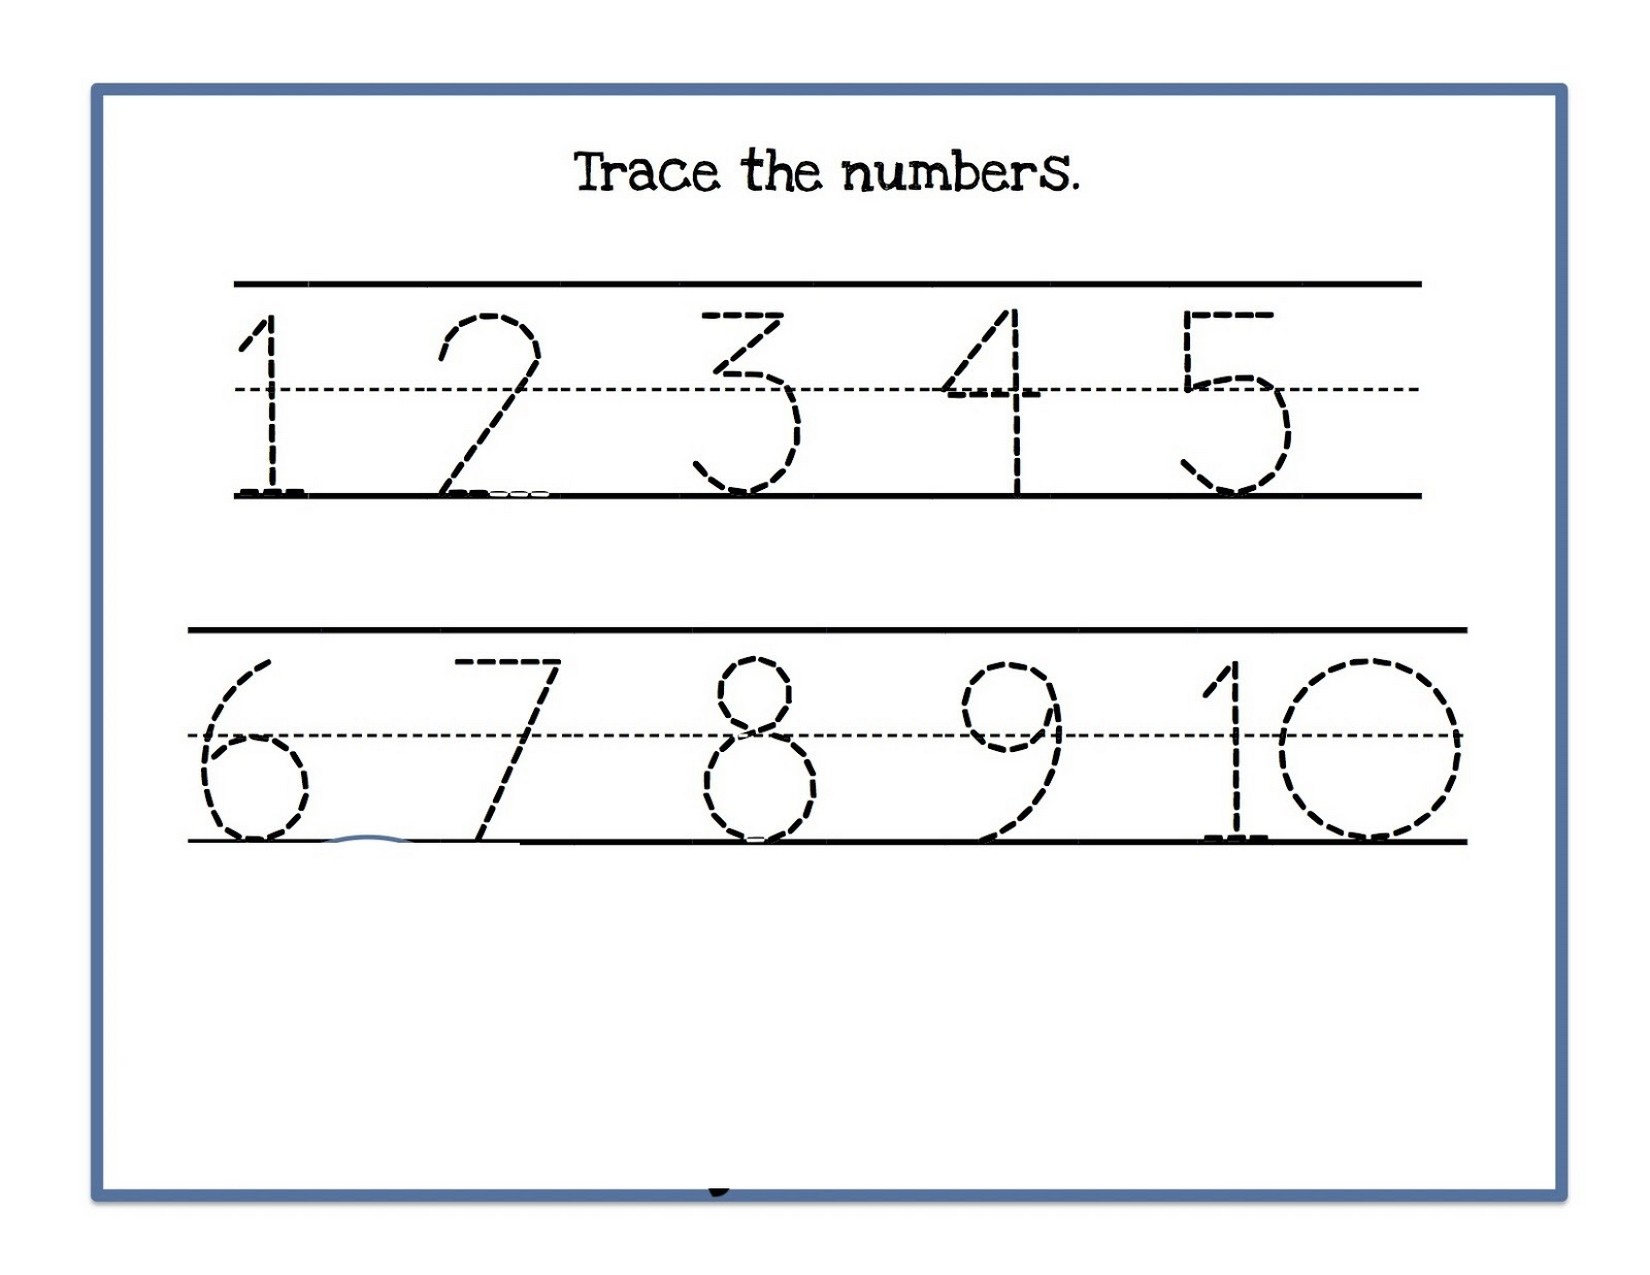 tracing numbers 1-10 worksheet for kids